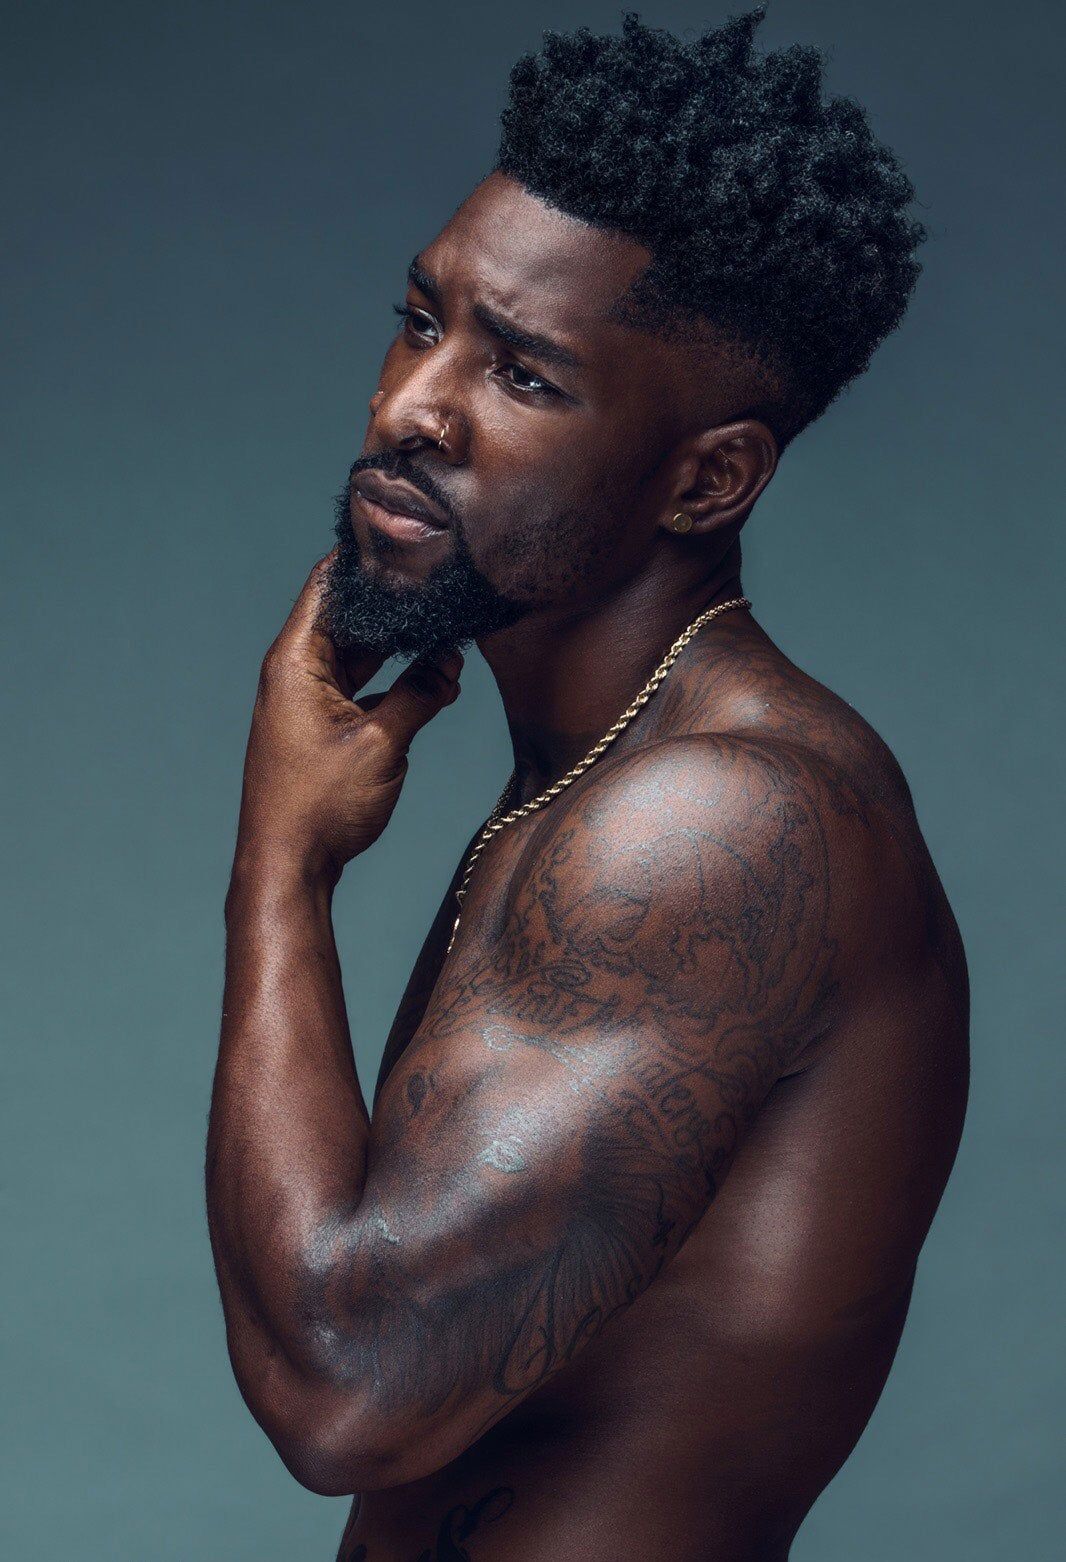 Mature black men tumblr